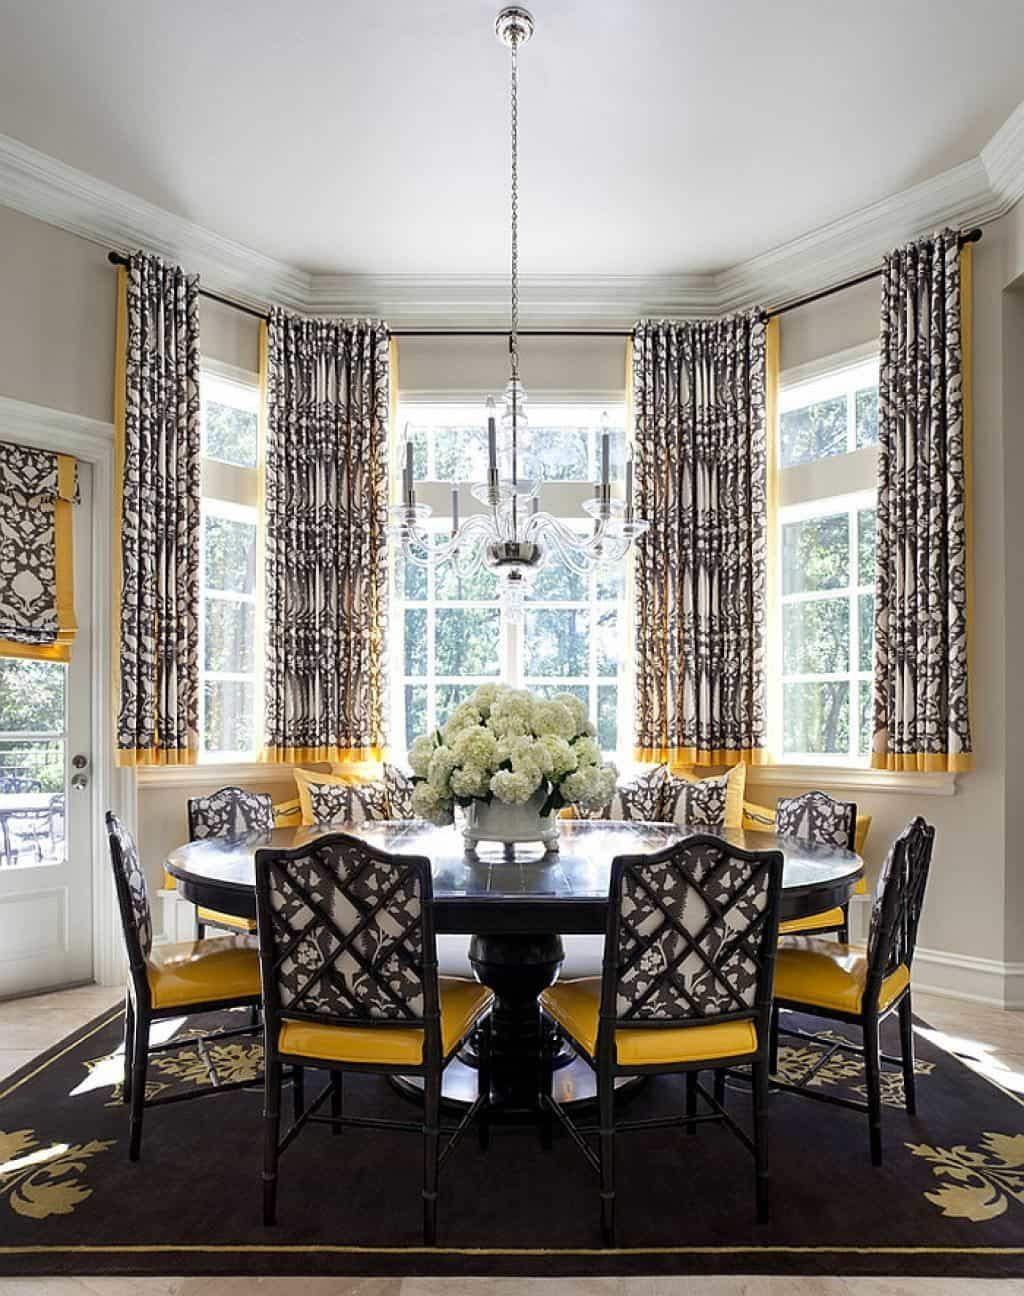 12 Formal Dining Room Window Treatments Ideas Dining Room Window Treatments Dining Room Windows Black Dining Room